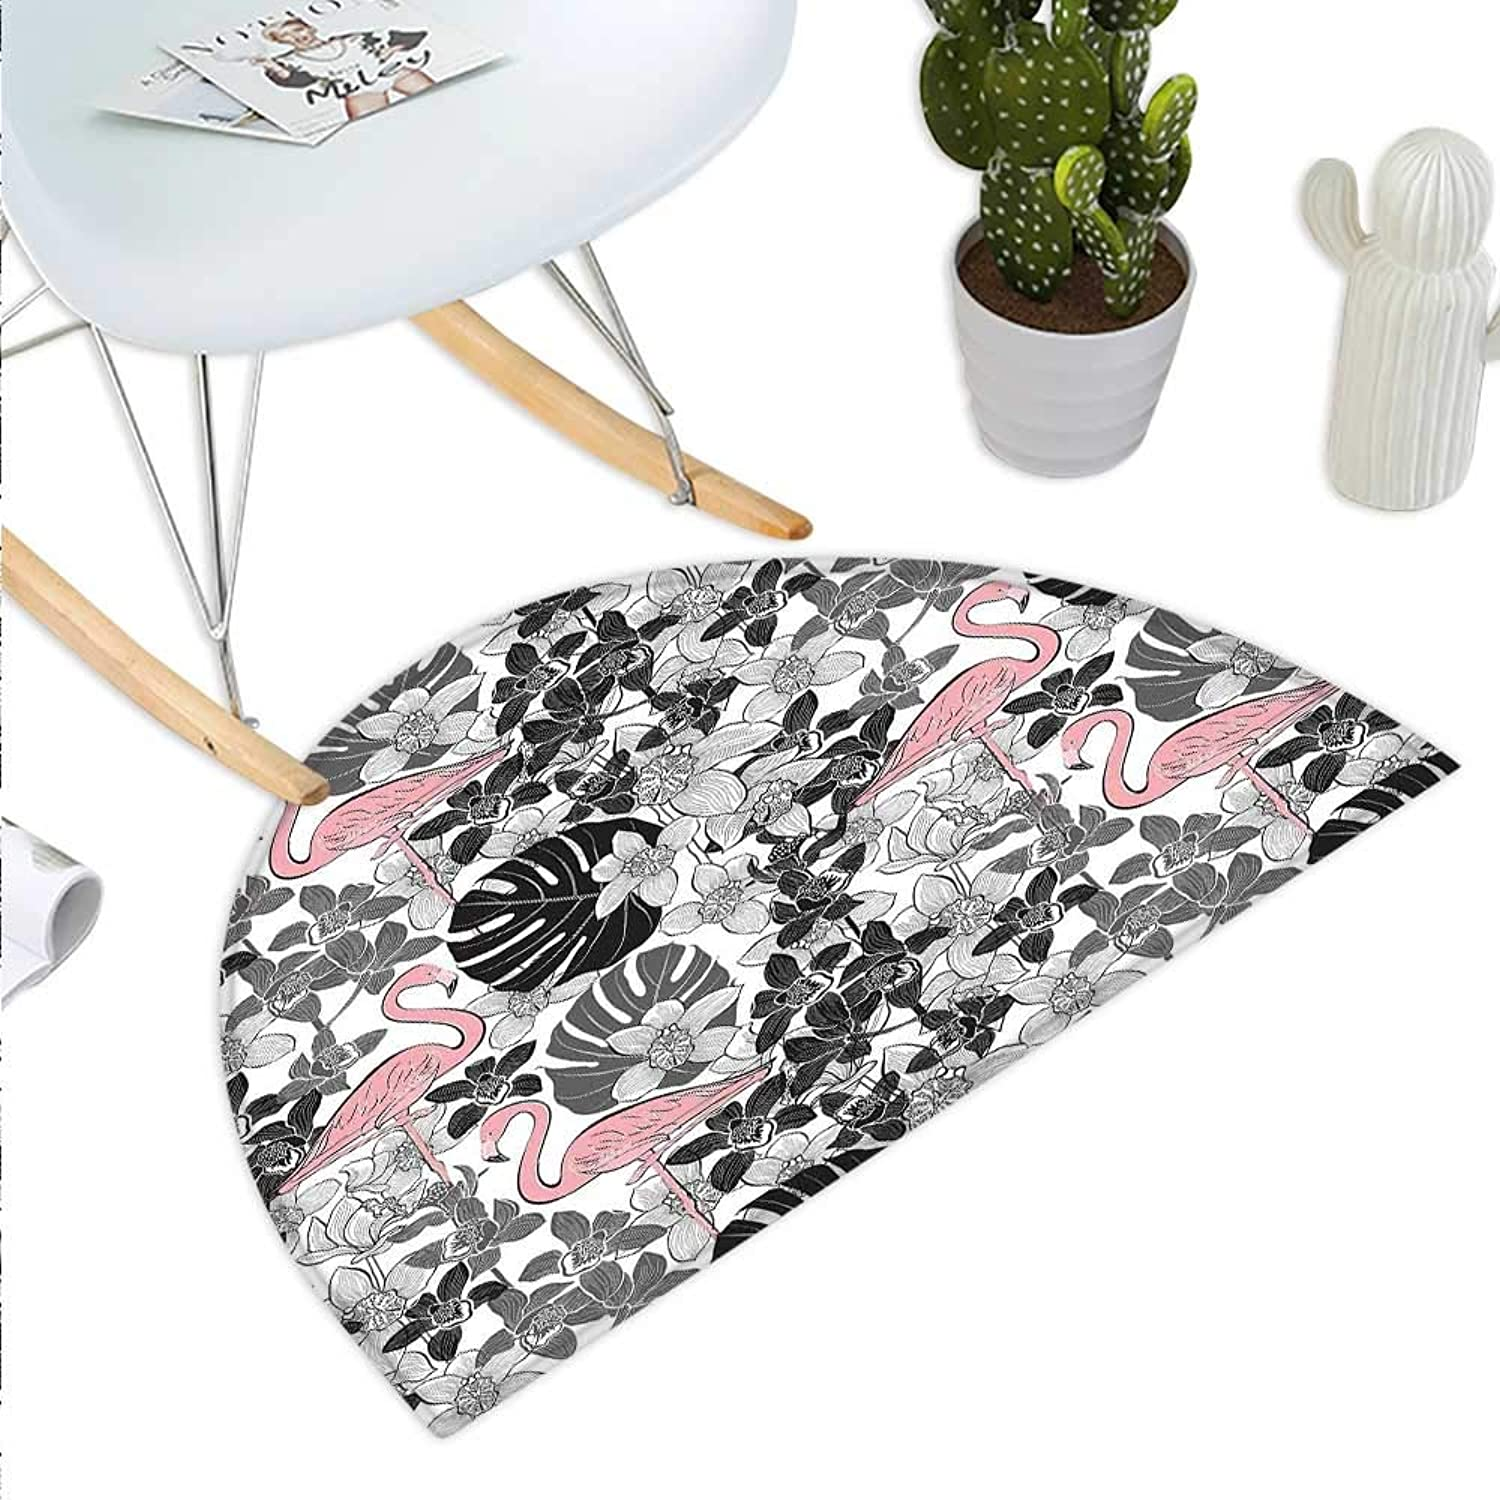 Flamingo Semicircle Doormat Flamingos Pattern Leaves and Flowers Tropical Plants on The Background Halfmoon doormats H 39.3  xD 59  Black Grey Pale Pink